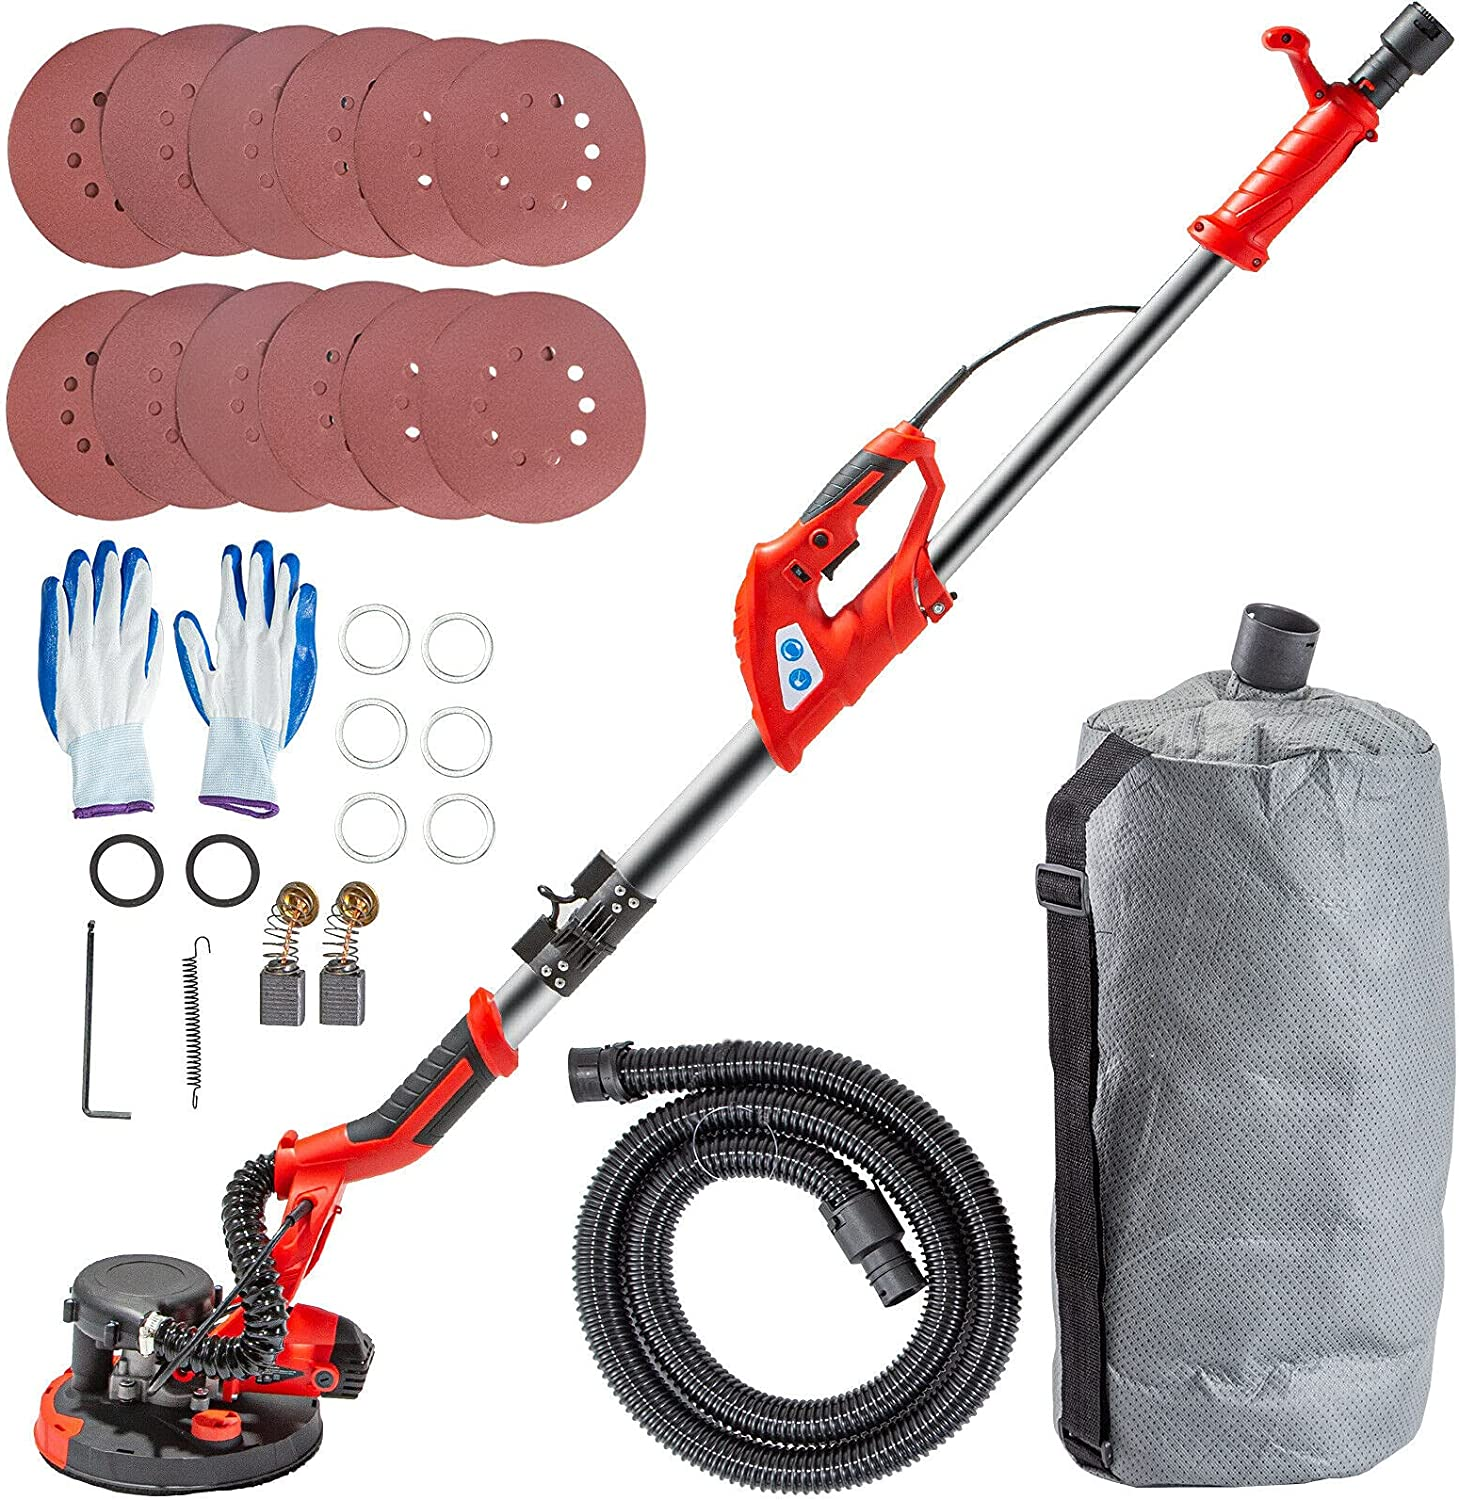 price Mophorn Drywall Sander 850W Foldable Popular shop is the lowest price challenge Electric She